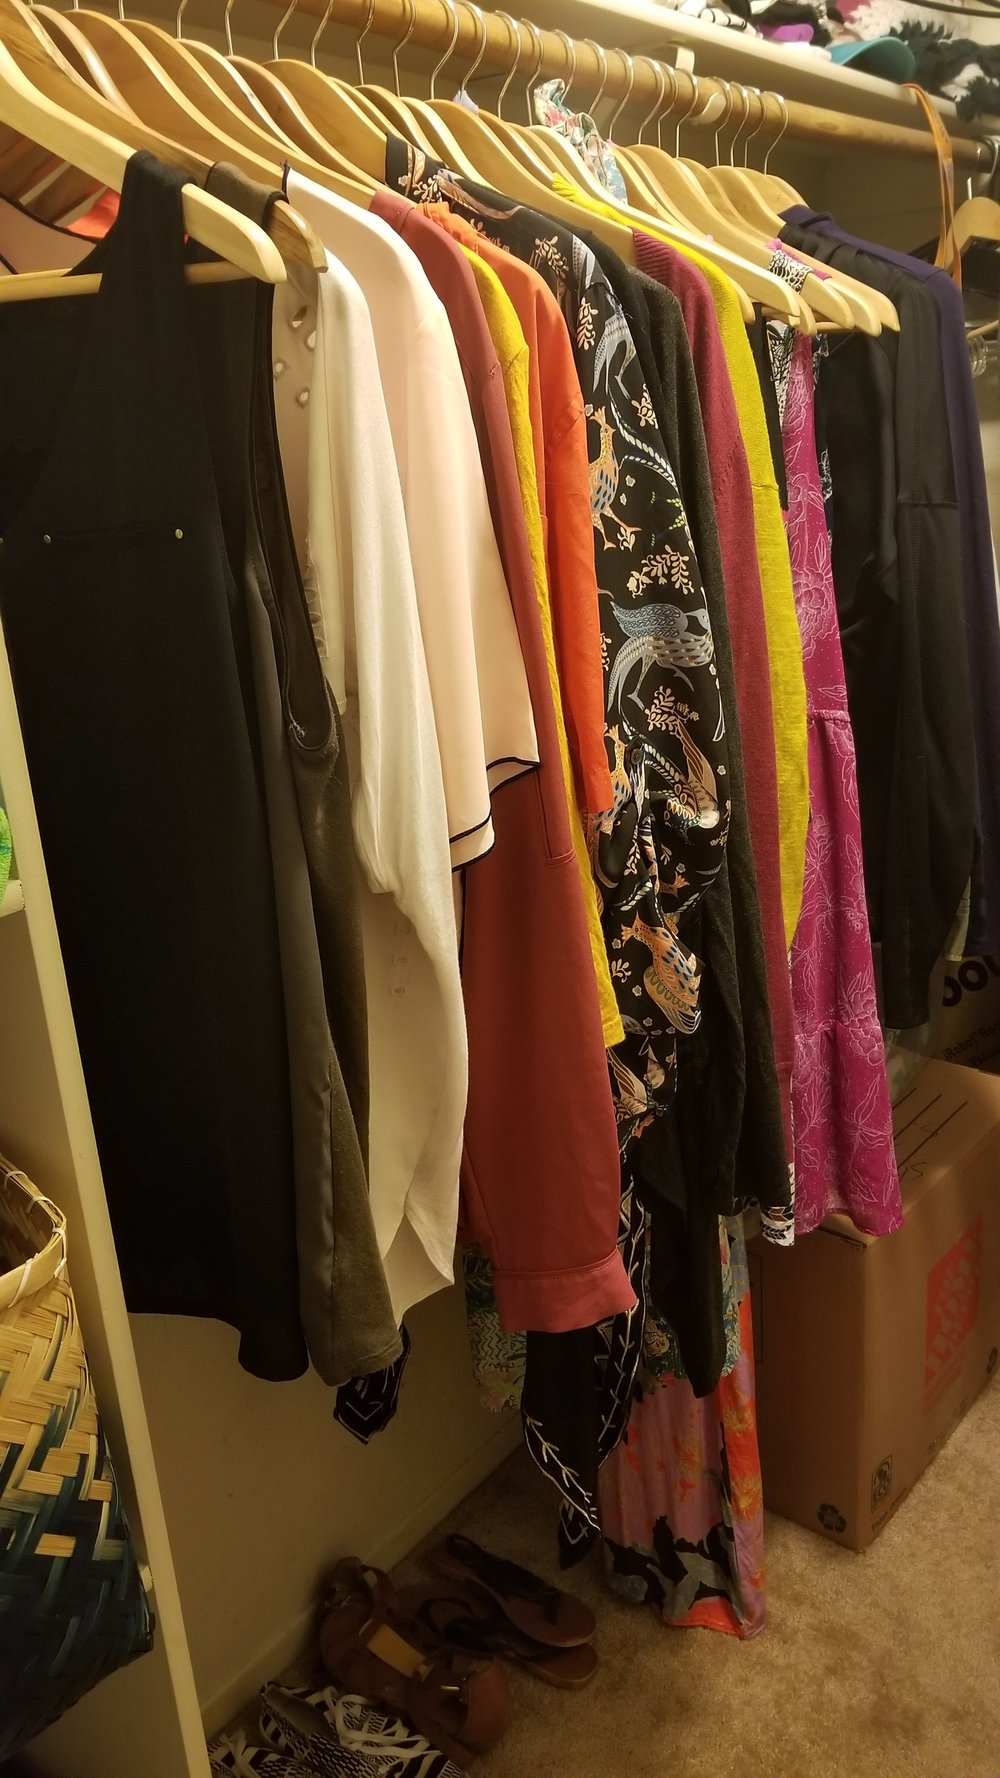 Weekly clothes stay on my closet rack while my out-of-season wear is packed away in a box close by